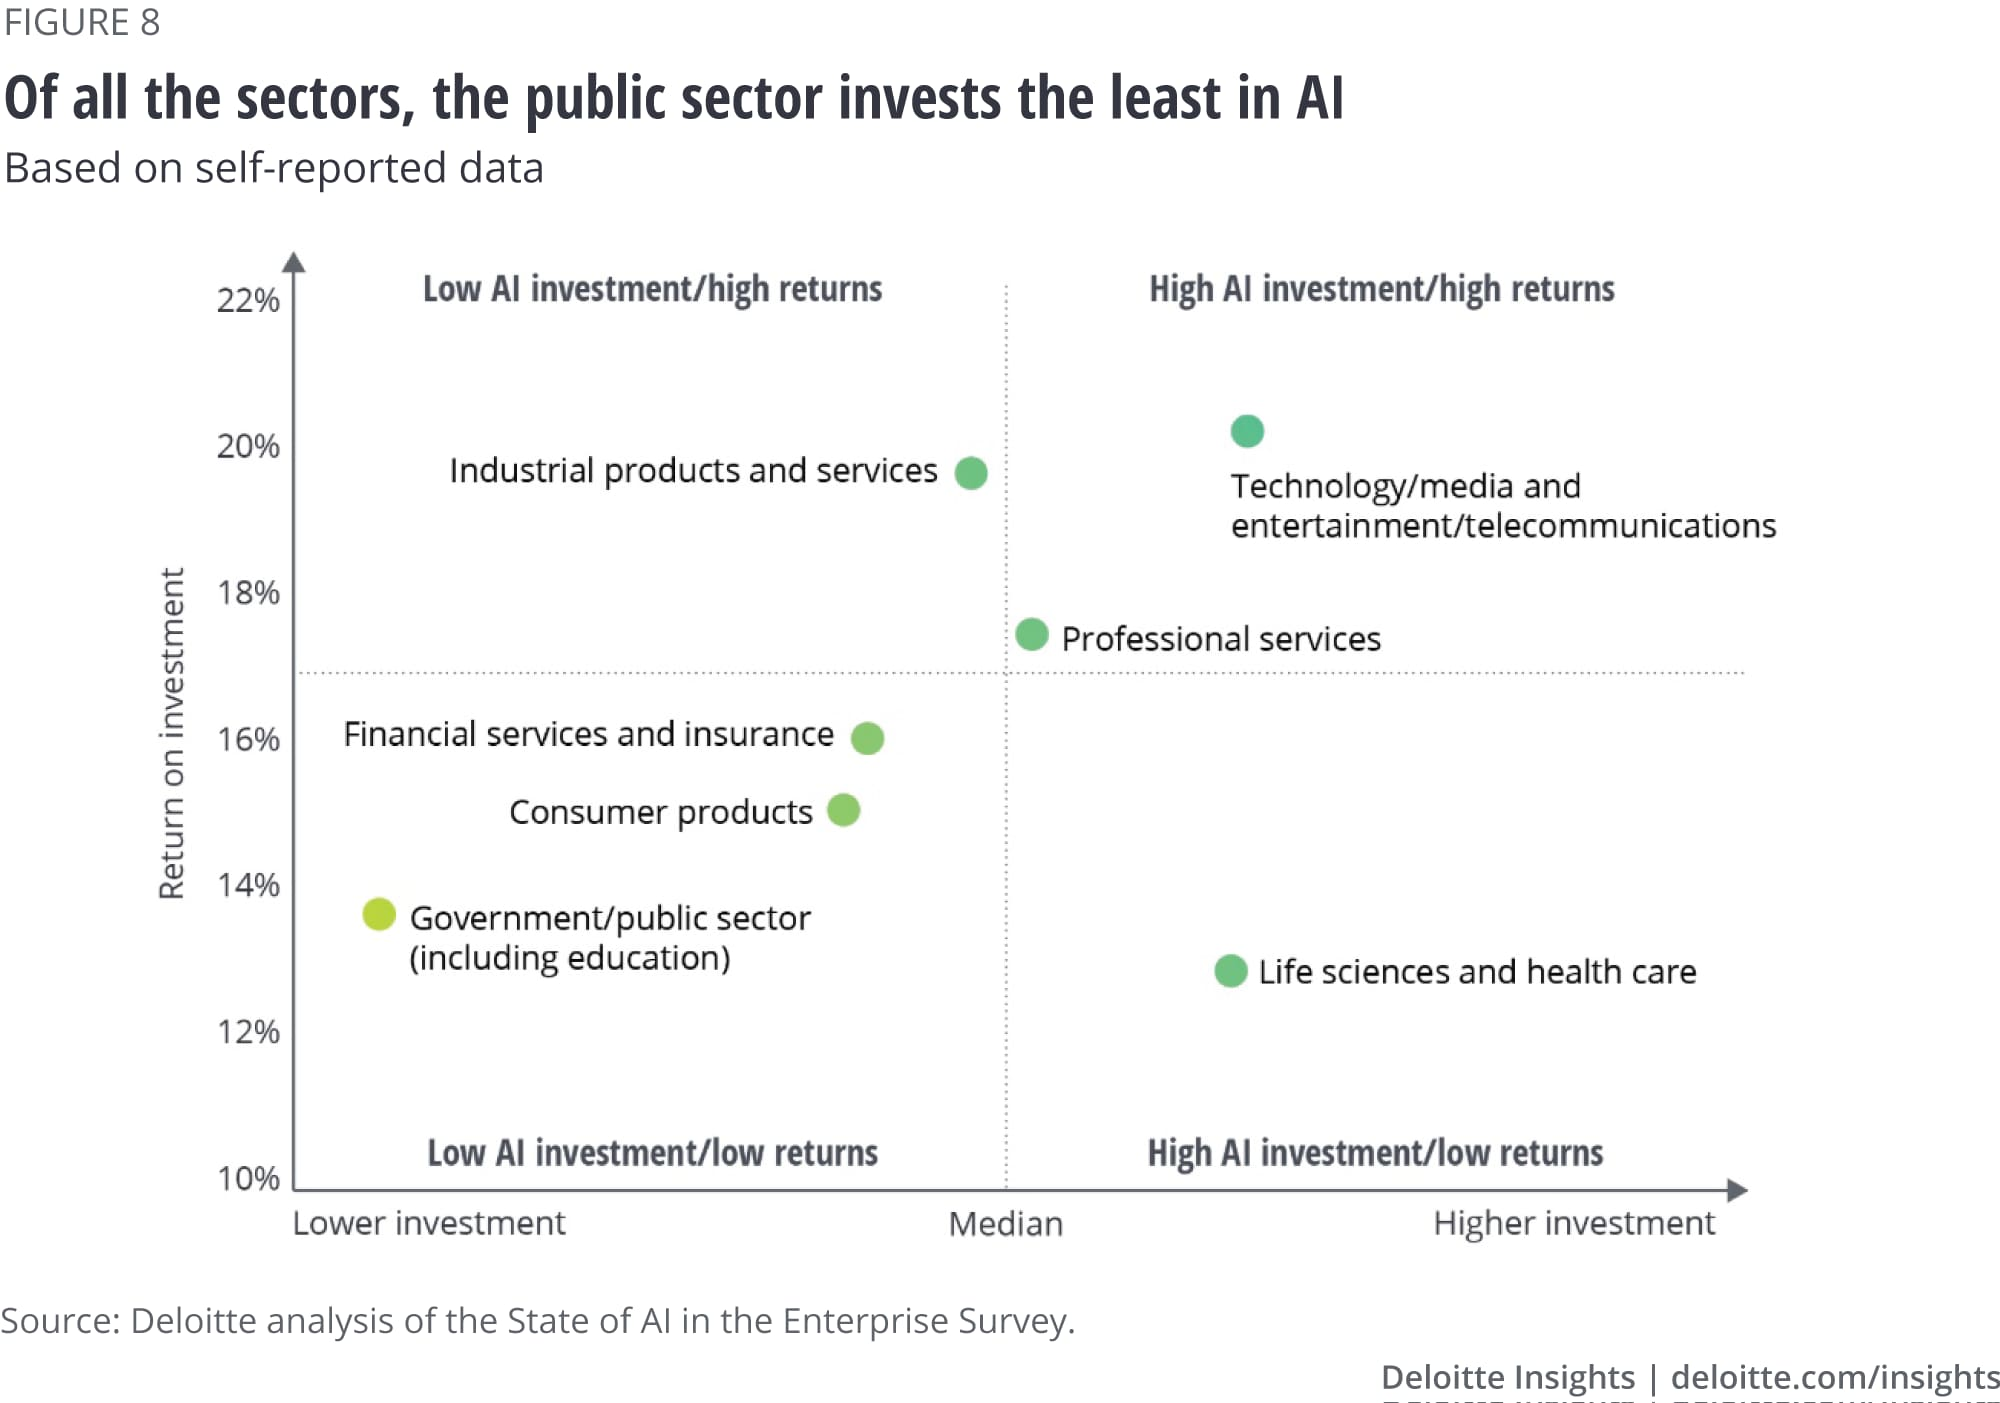 Of all the sectors, the public sector invests the least in AI